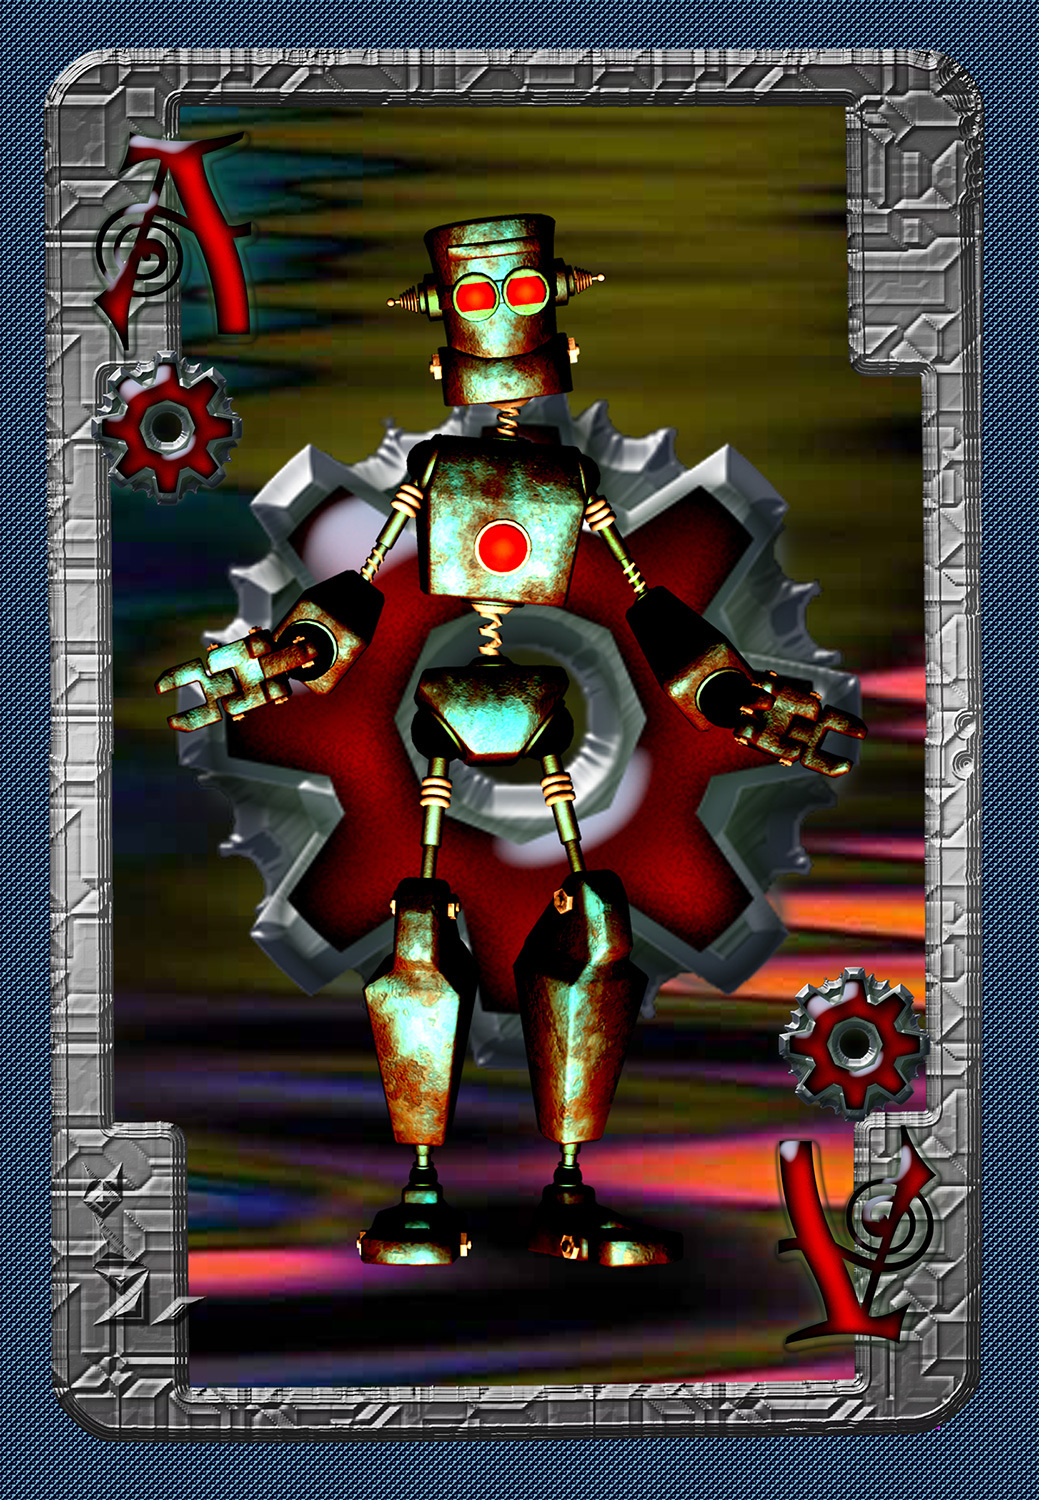 Ace of Cogs 2